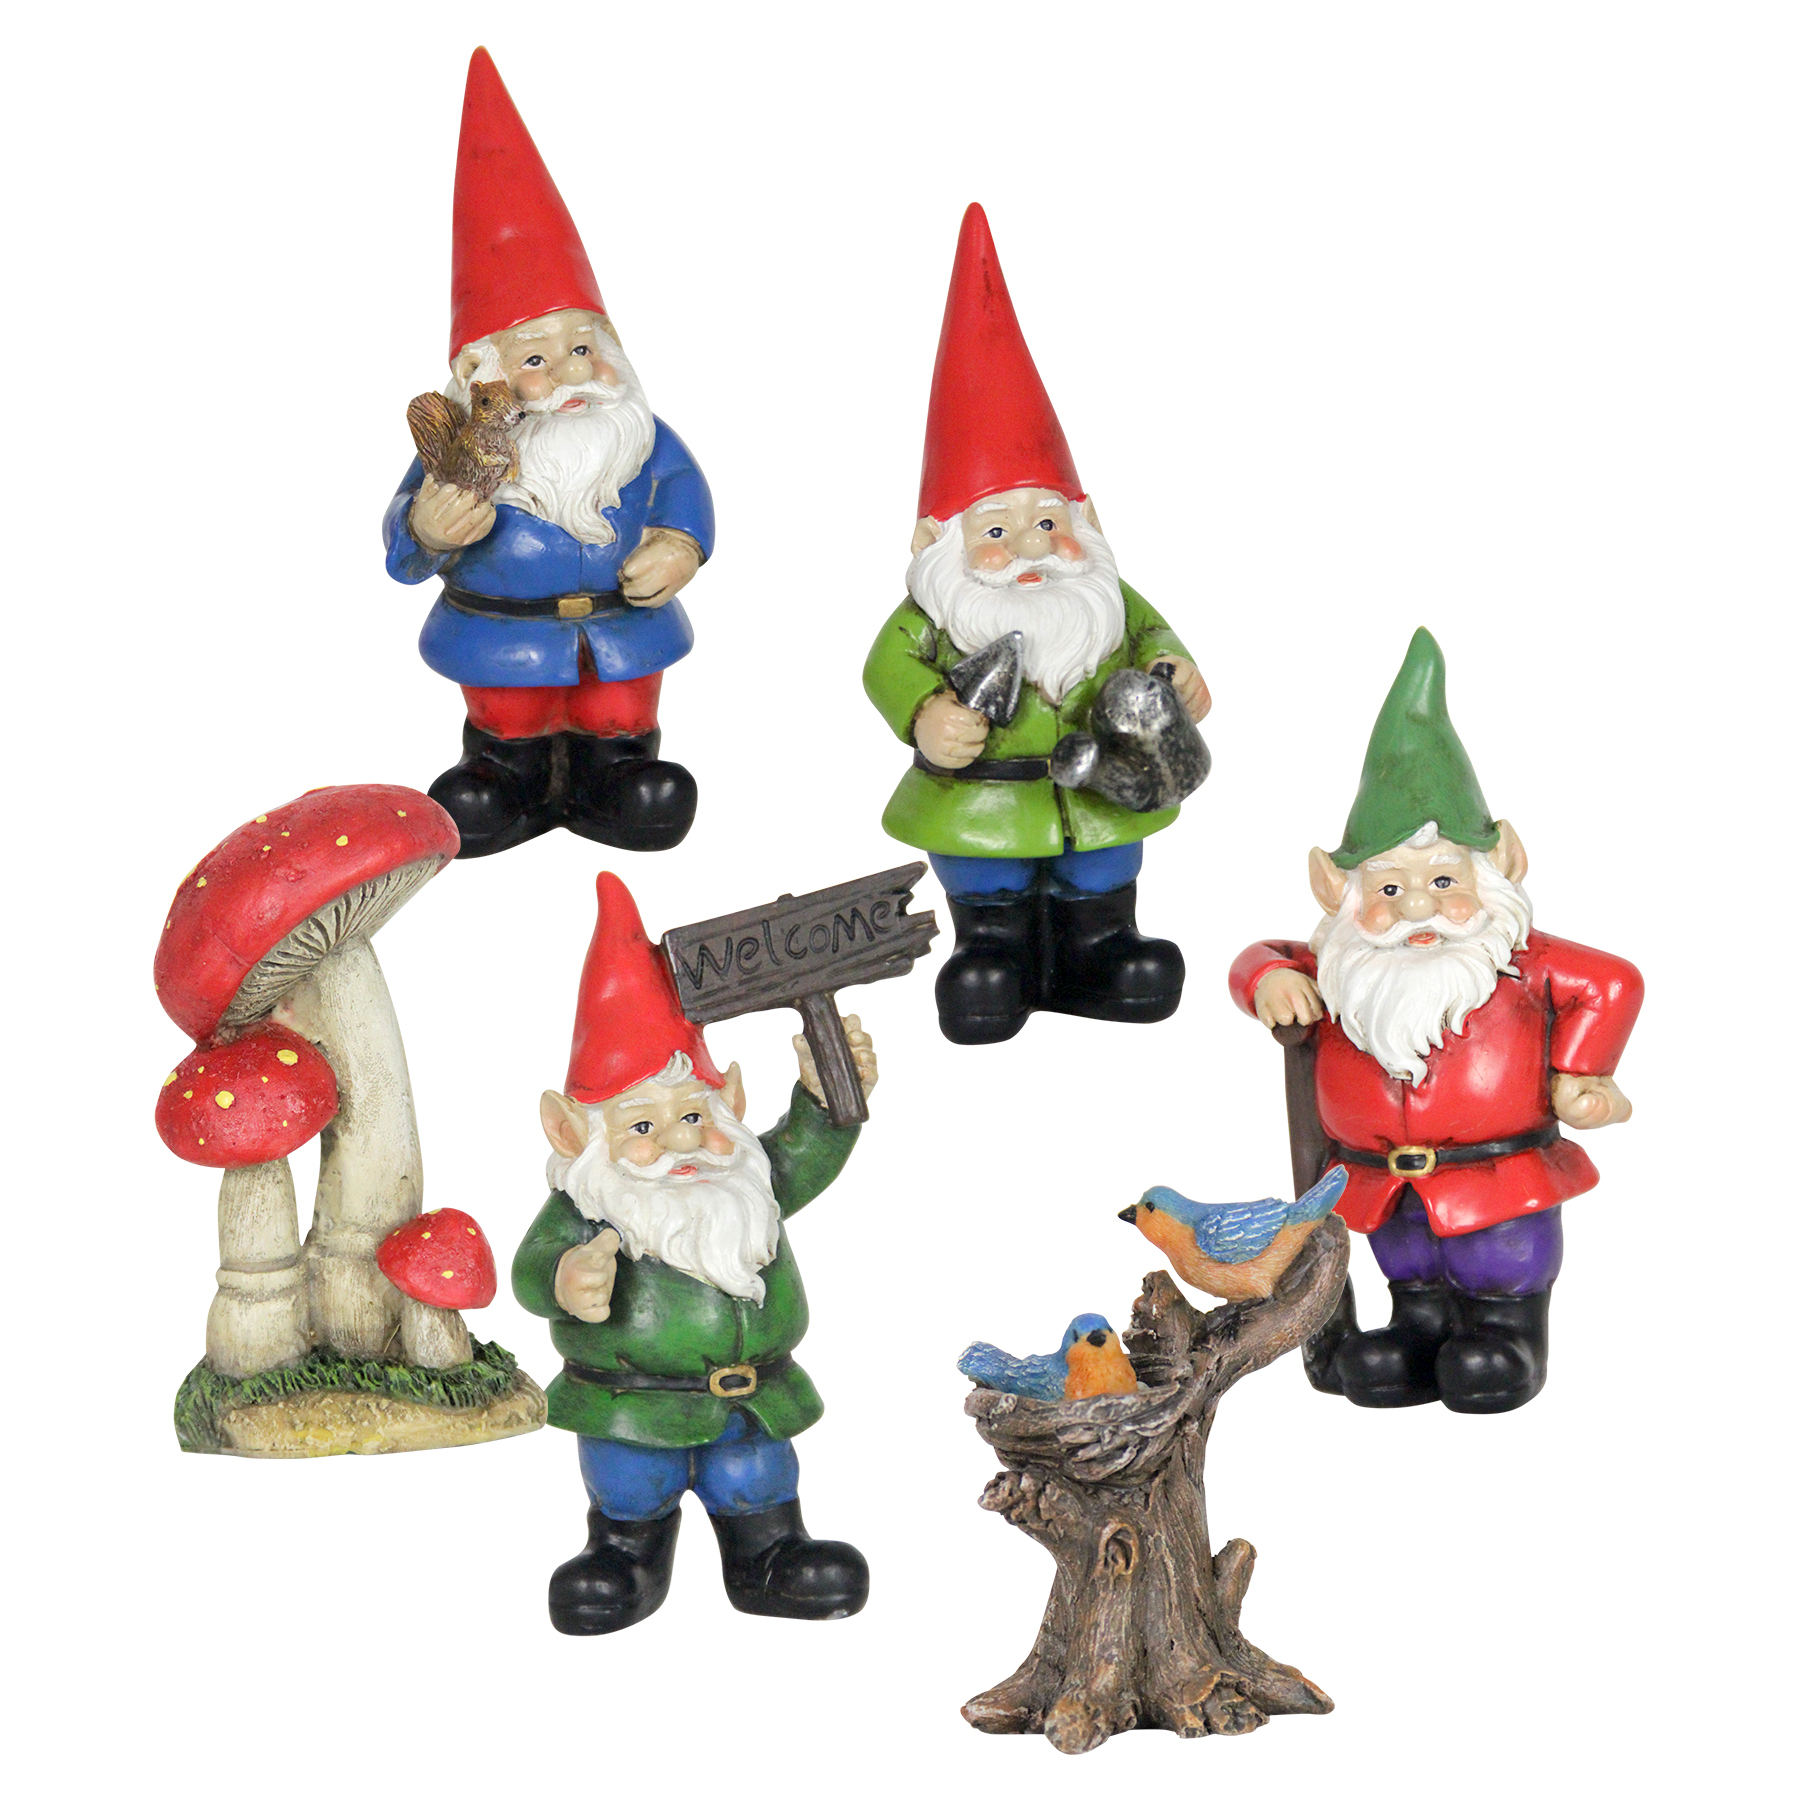 Miniature Gnome Garden Set (6pc)